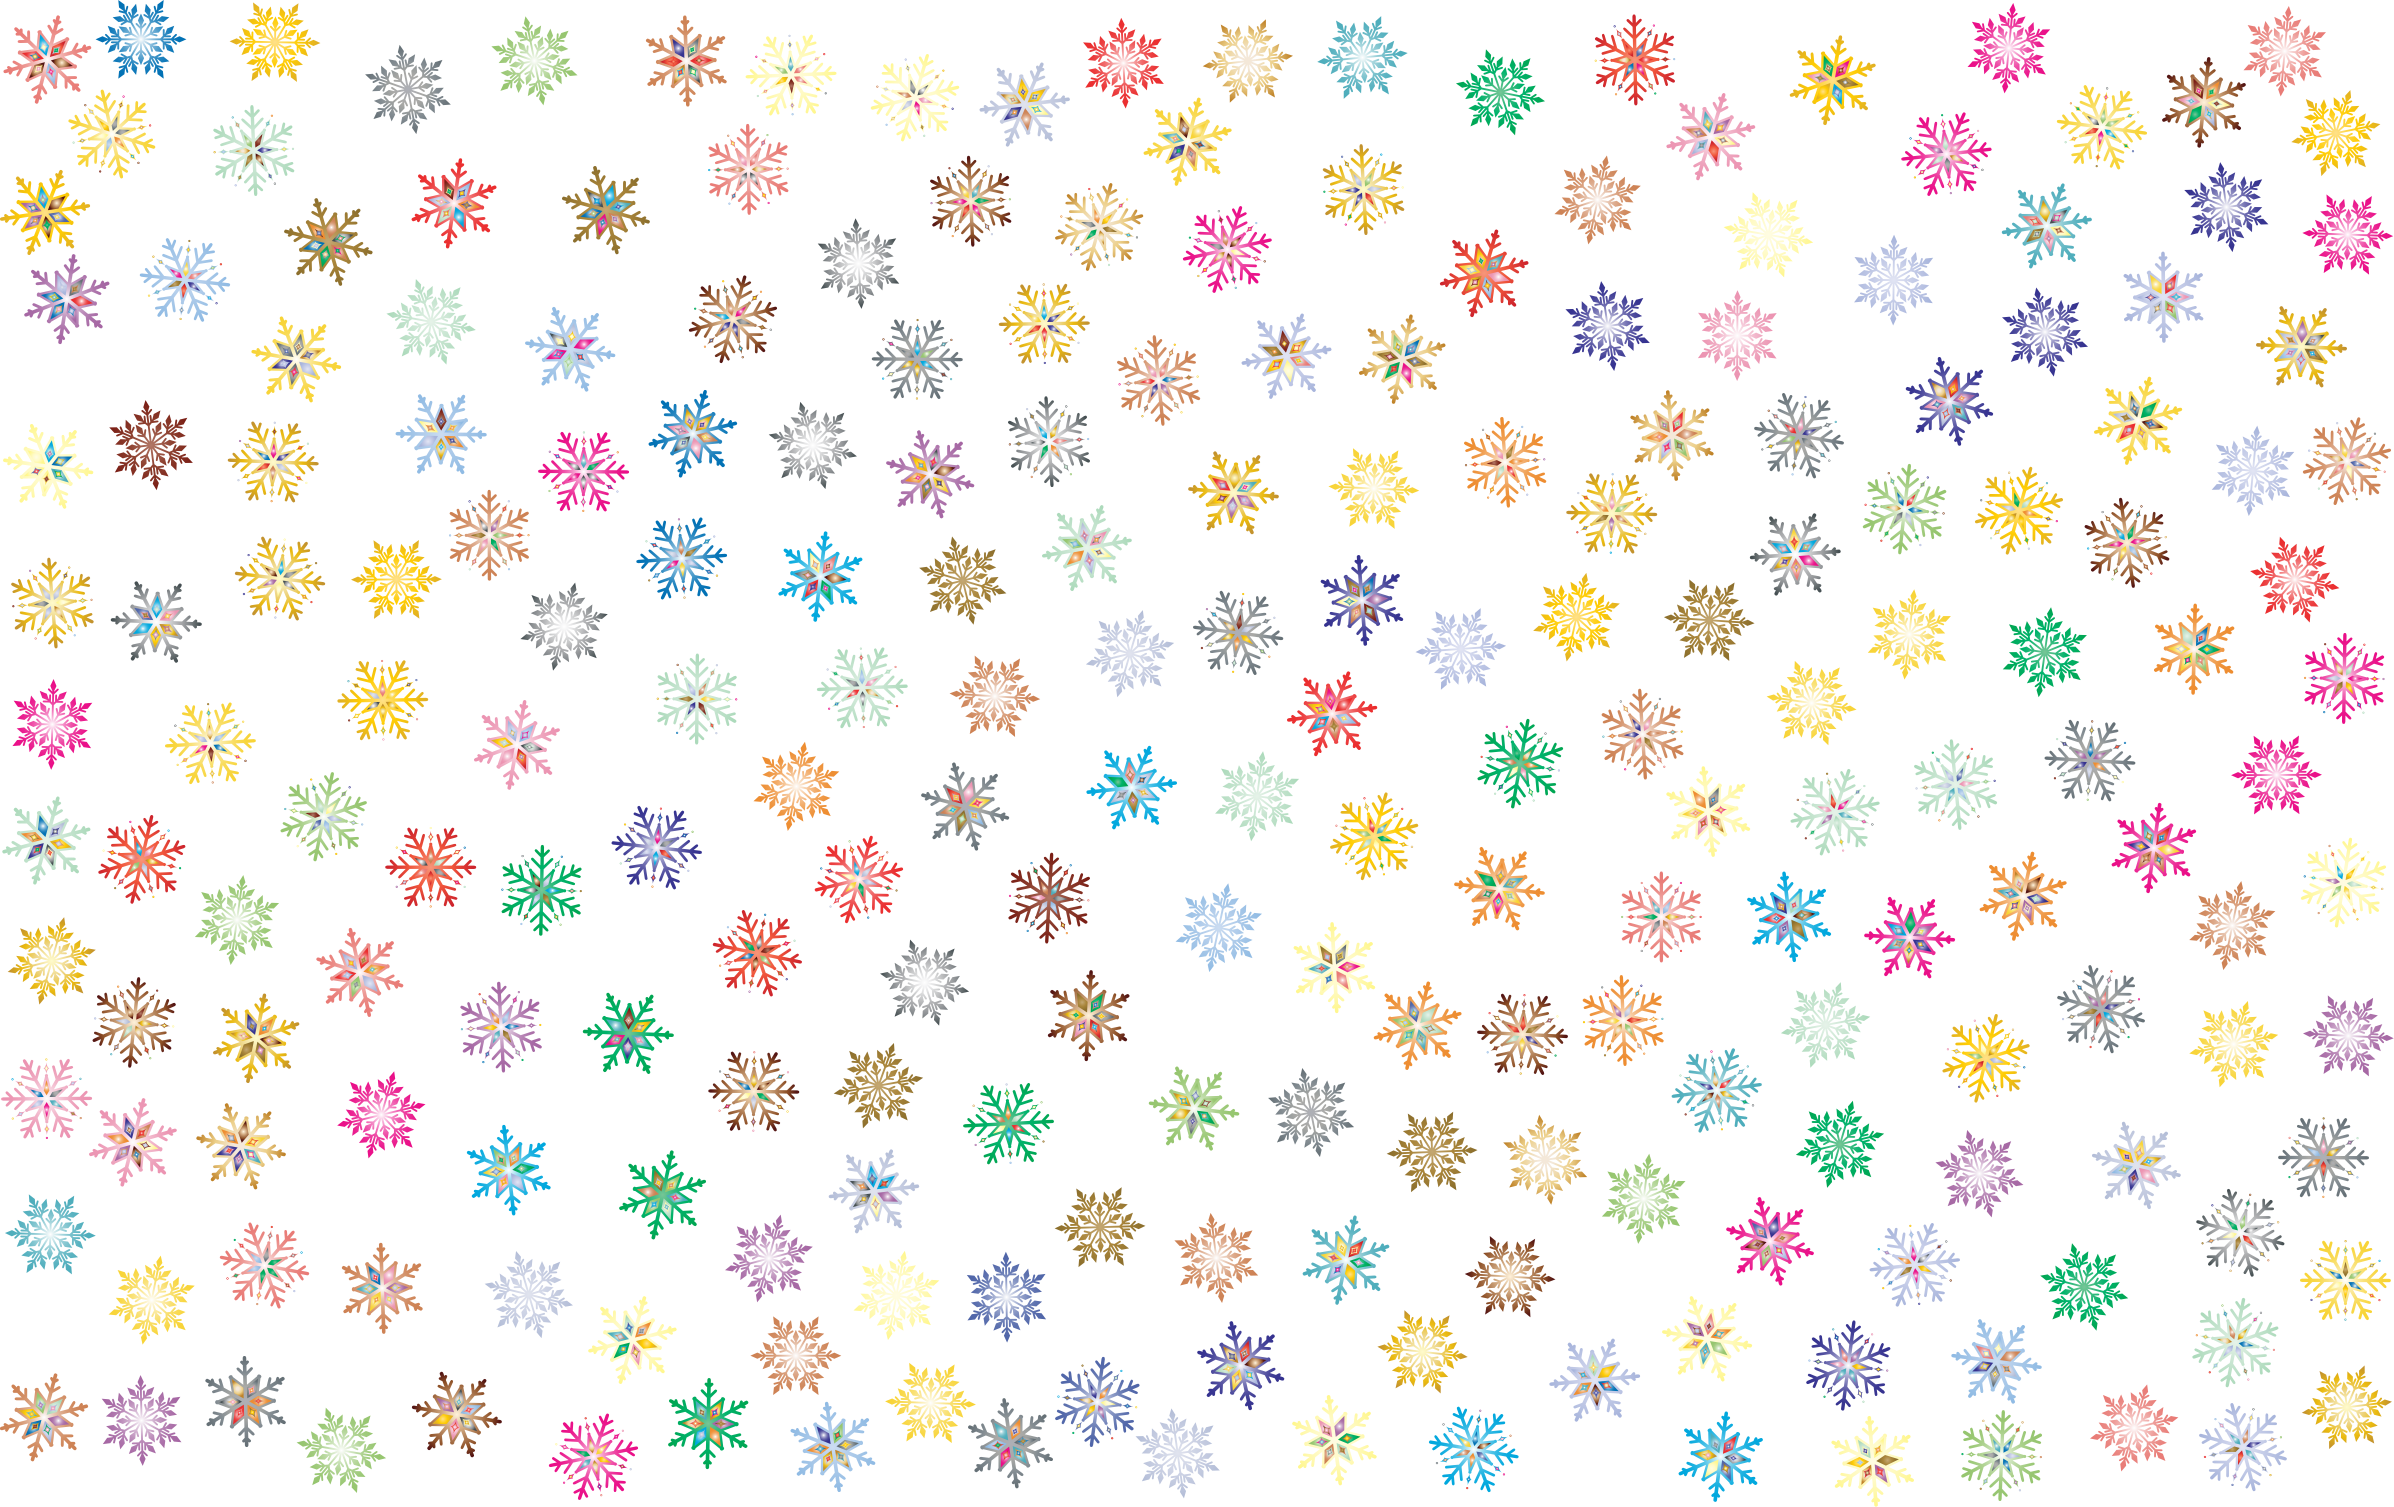 Snowflake wallpaper clipart vector black and white Clipart - Prismatic Snowflakes Pattern 2 No Background vector black and white